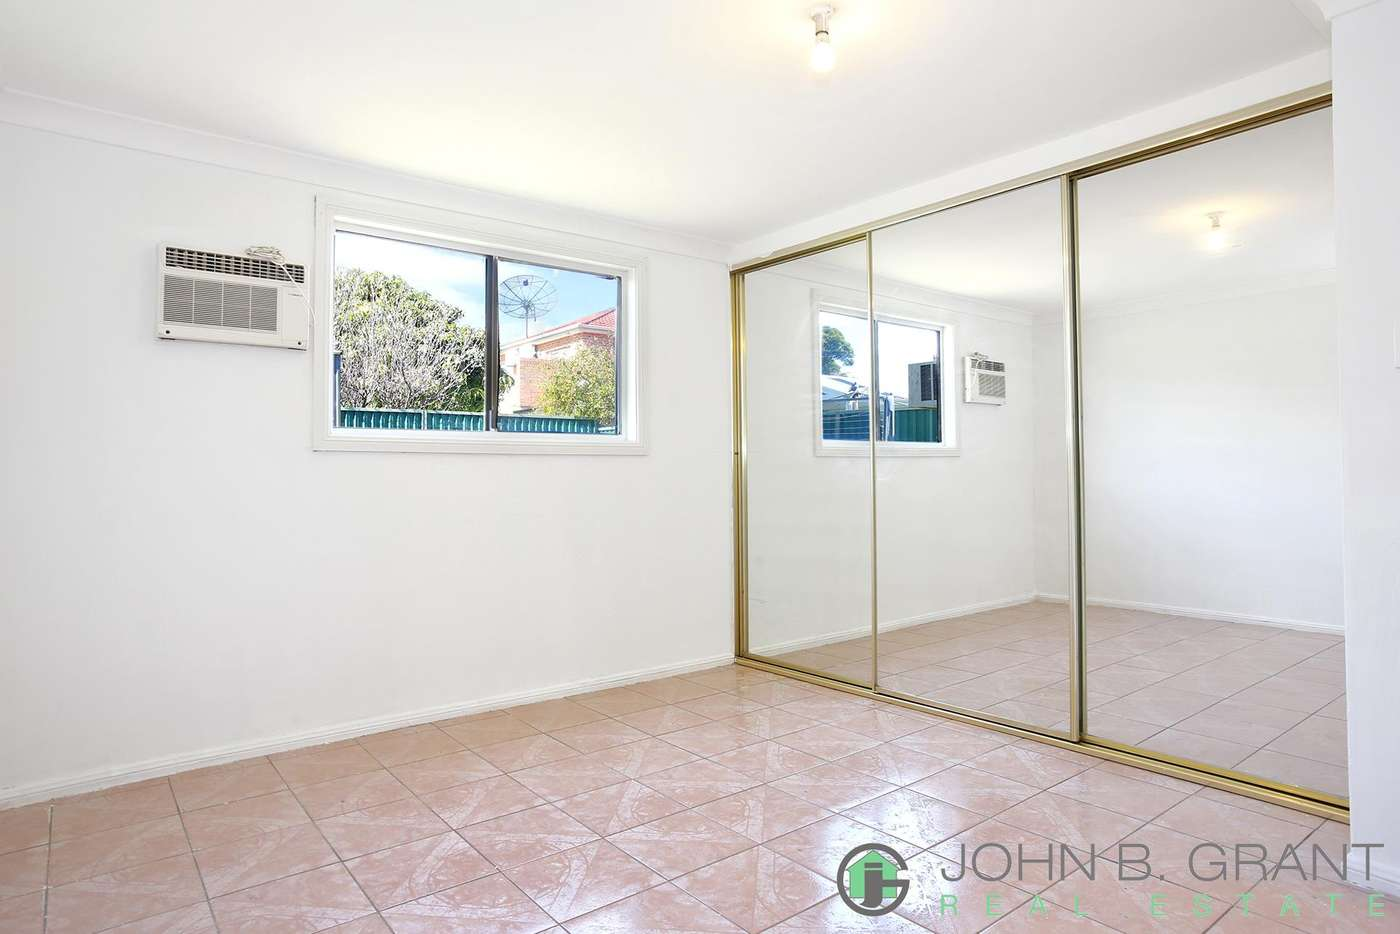 Sixth view of Homely house listing, 34 Chisholm Road, Auburn NSW 2144